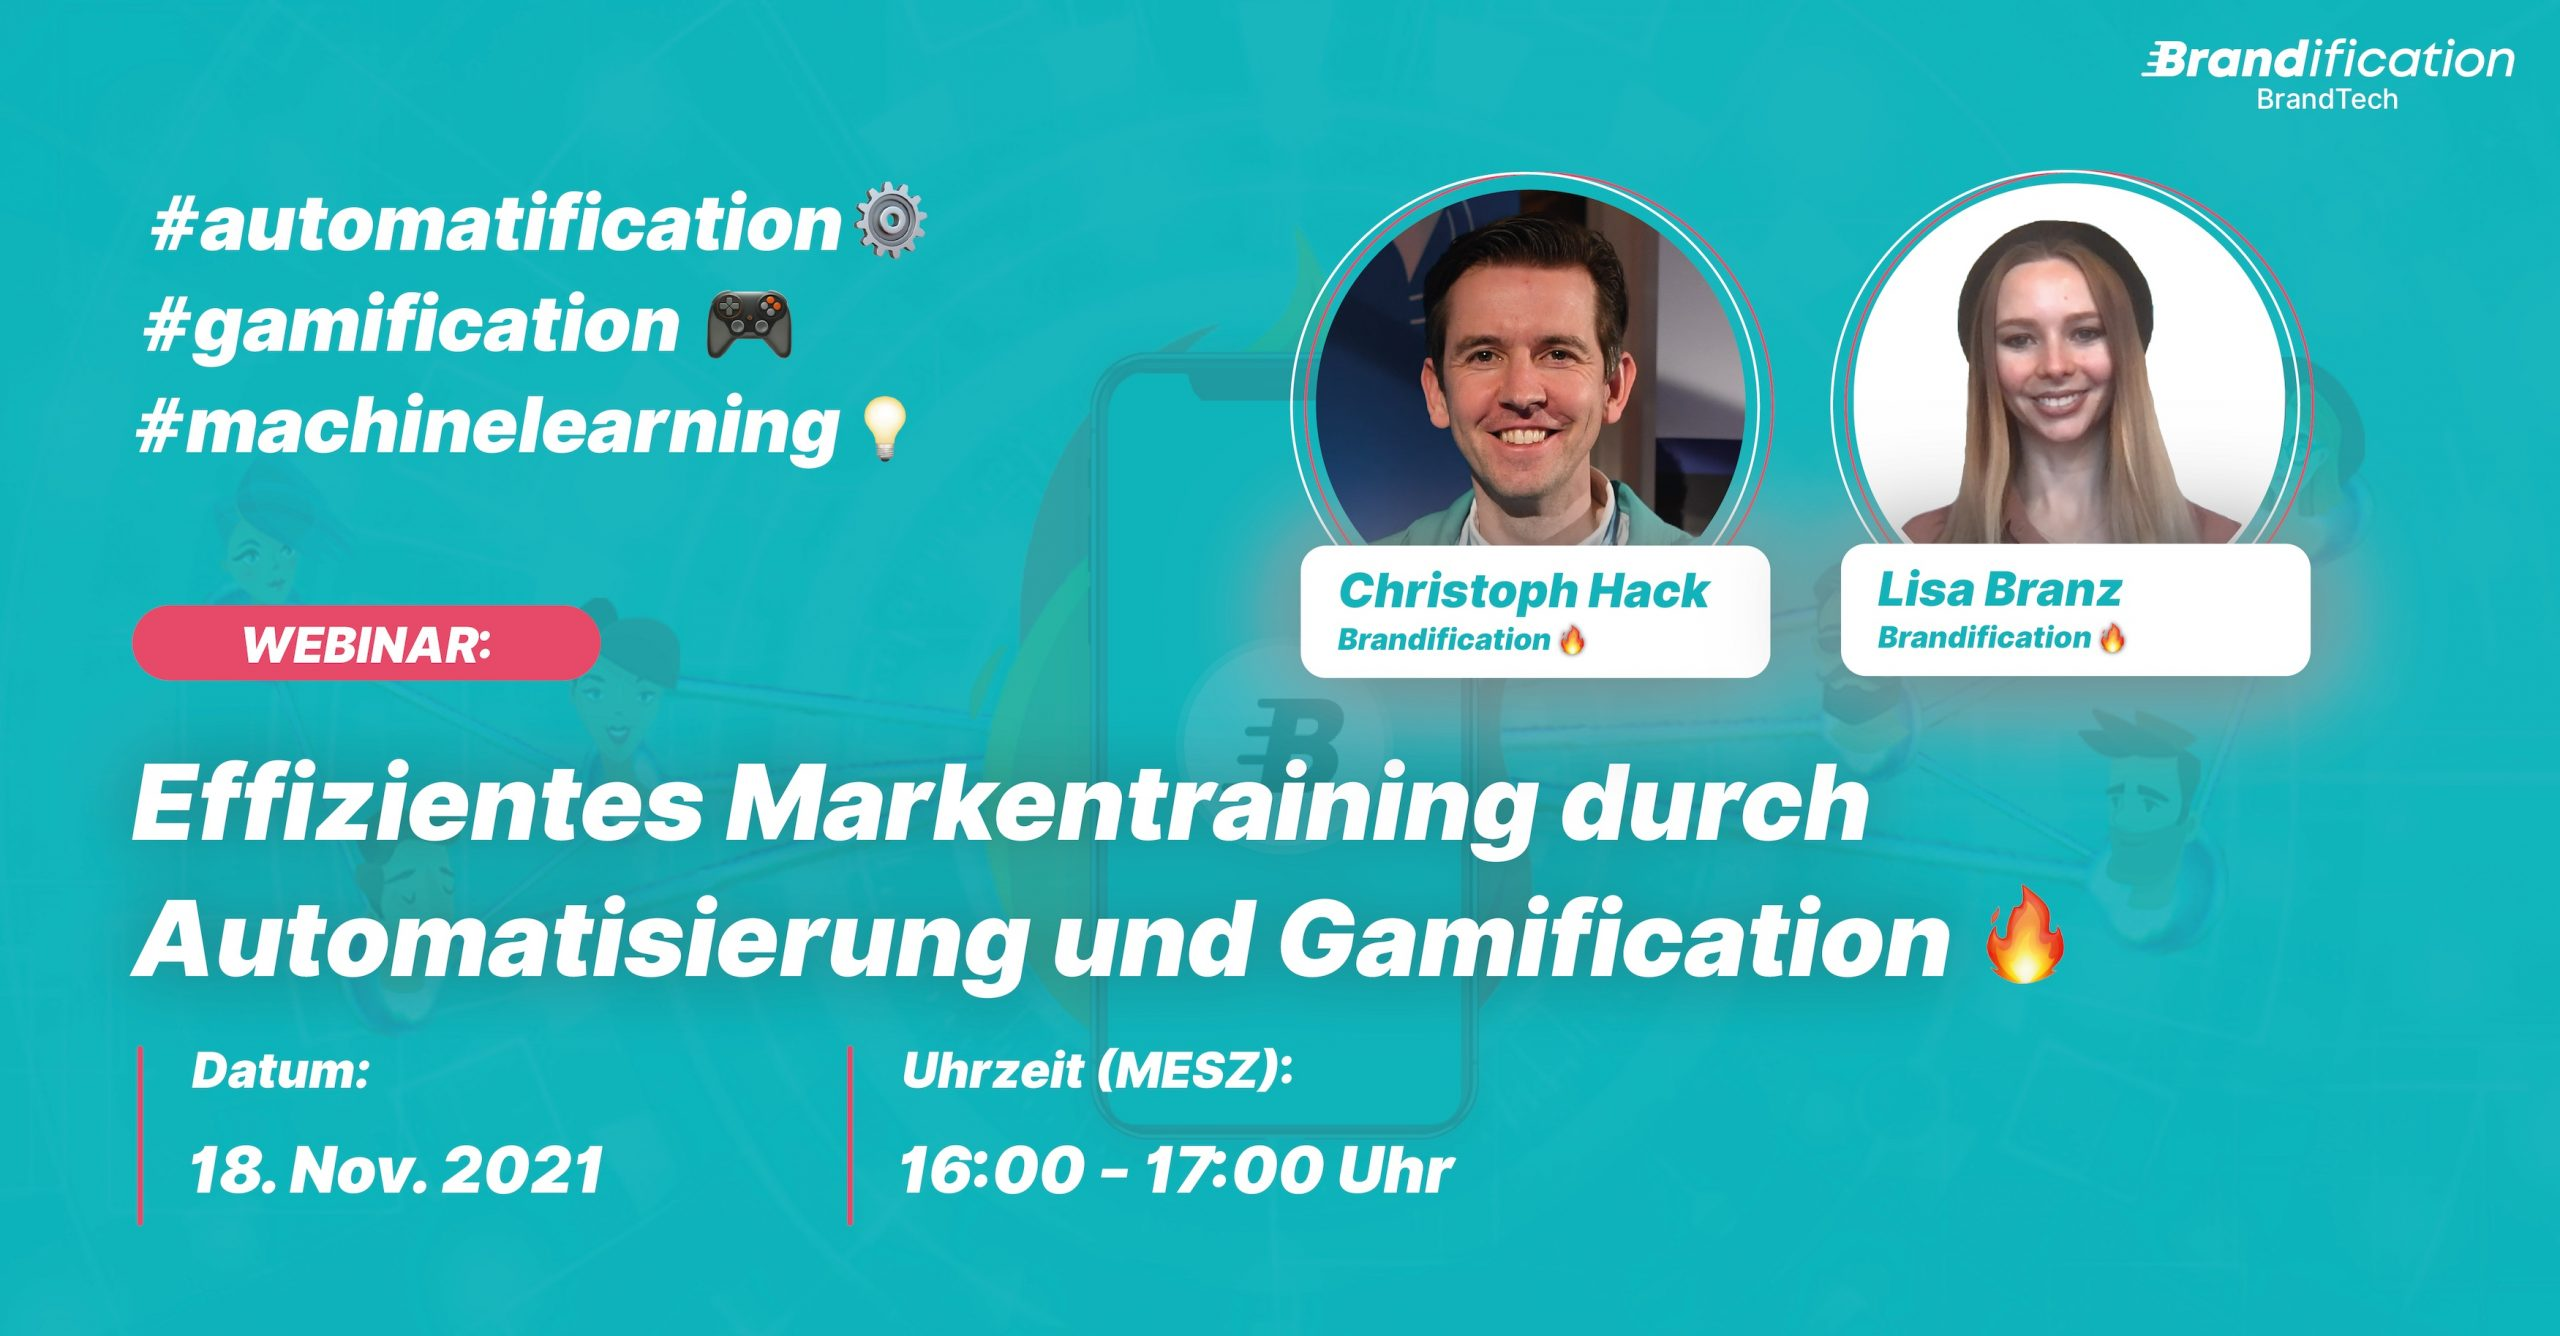 Websession Brandification Gamification Automatisierung 18.11.